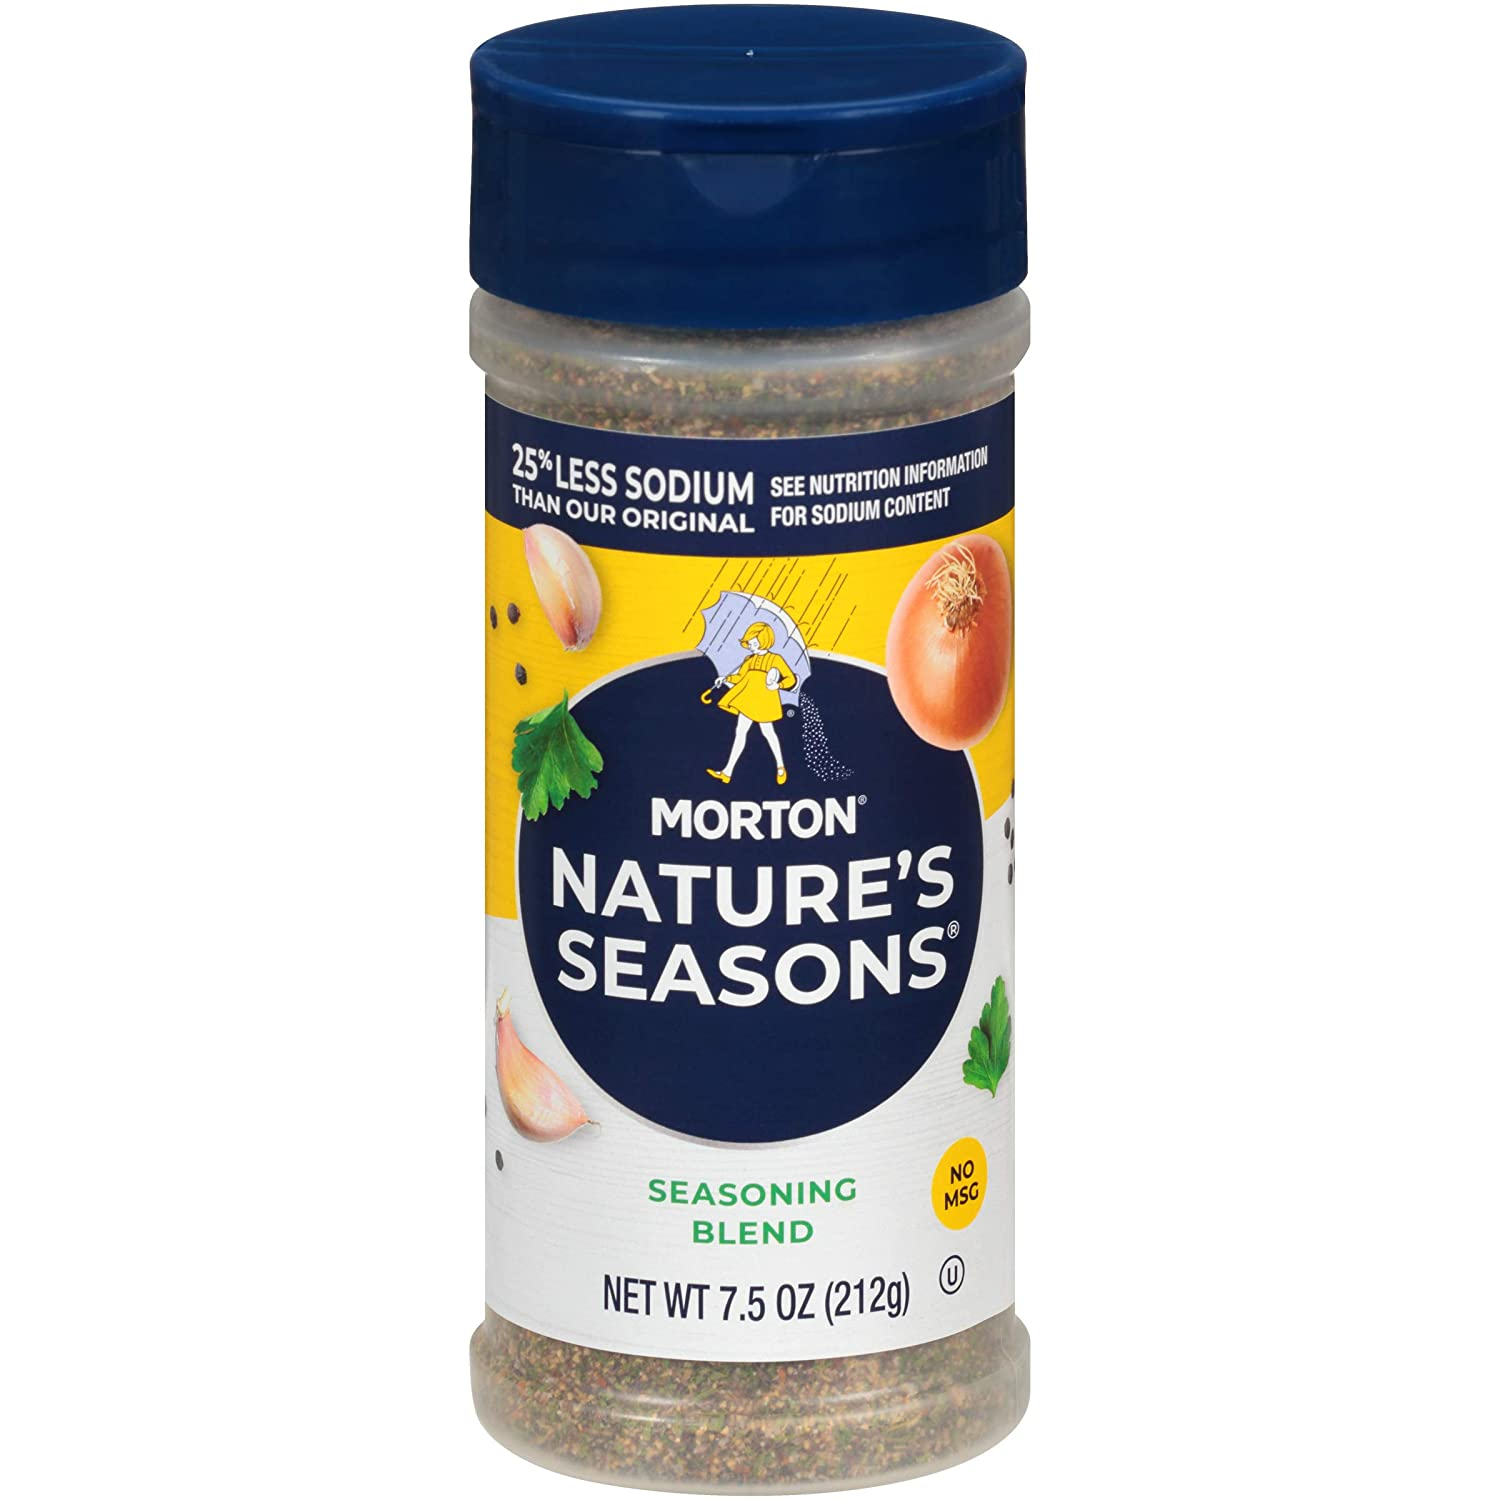 Morton 25% Less Sodium Nature's Seasons Seasoning Blend, 7.5 Ounce (Pack of 6)